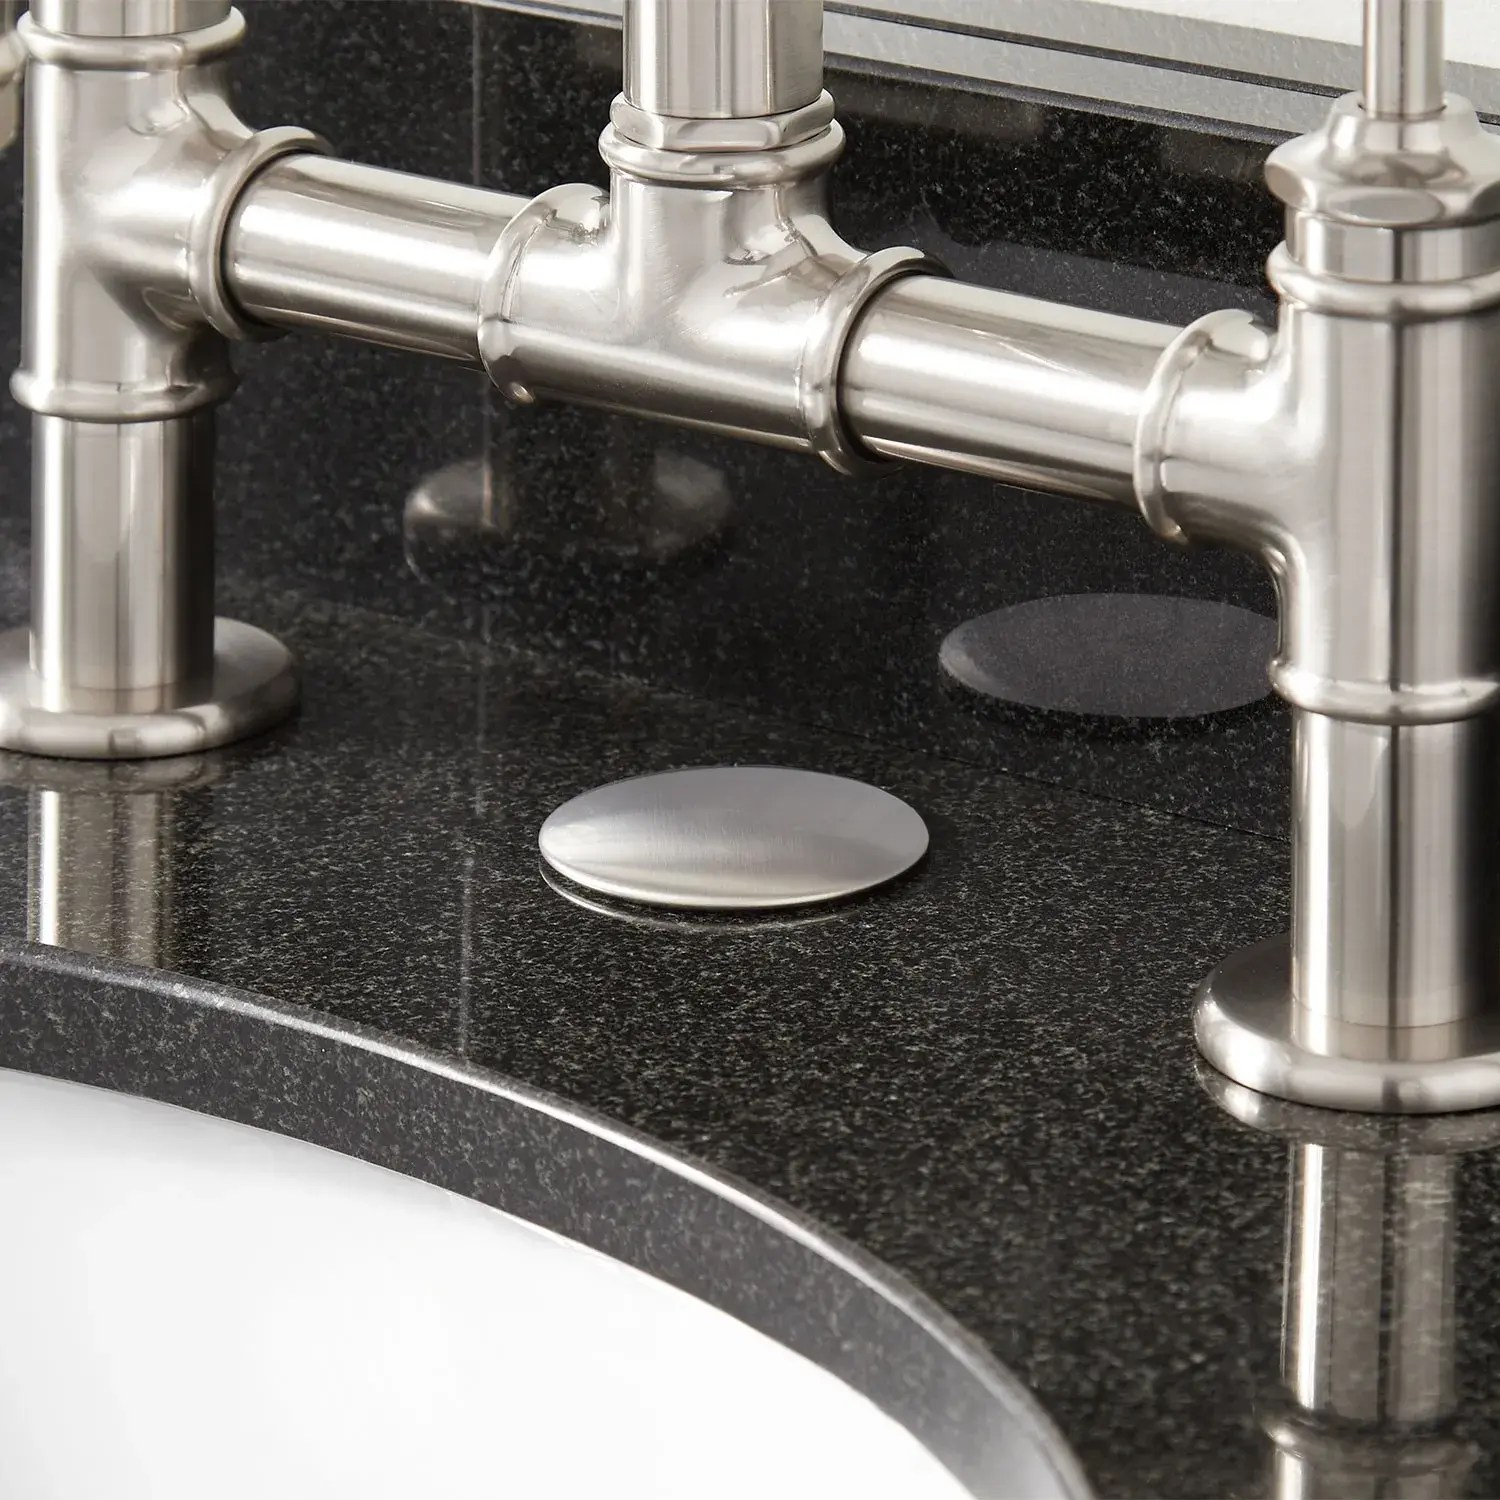 2 faucet hole cover